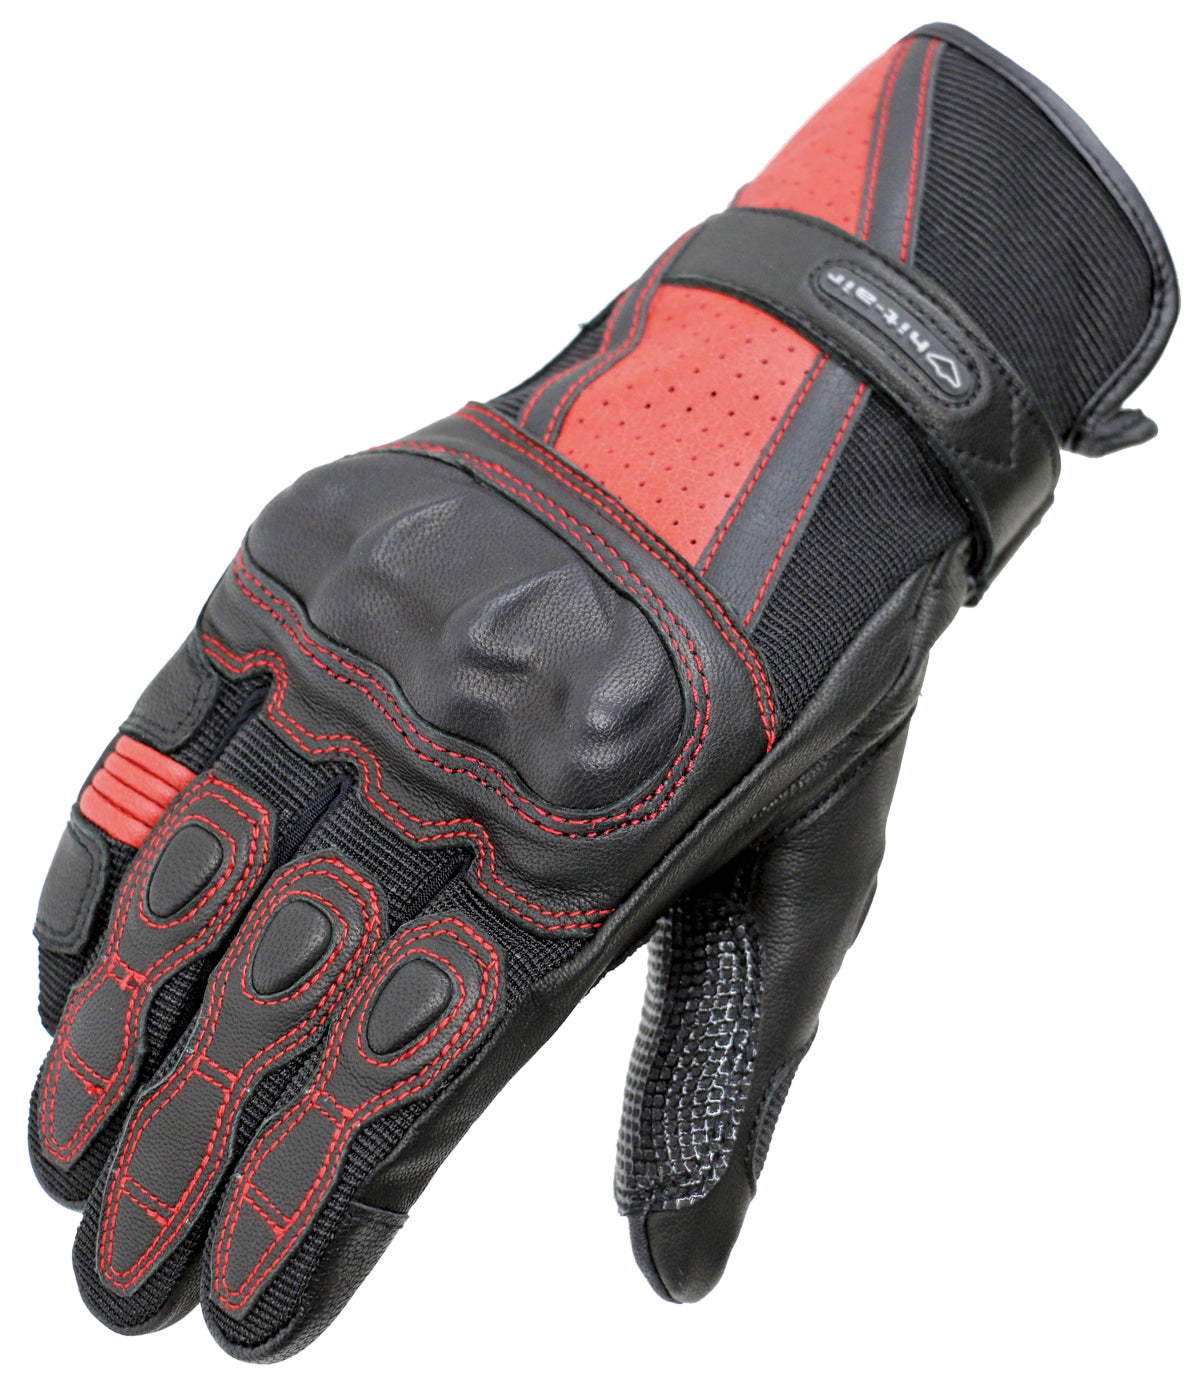 G7 Gloves (Stretch material)